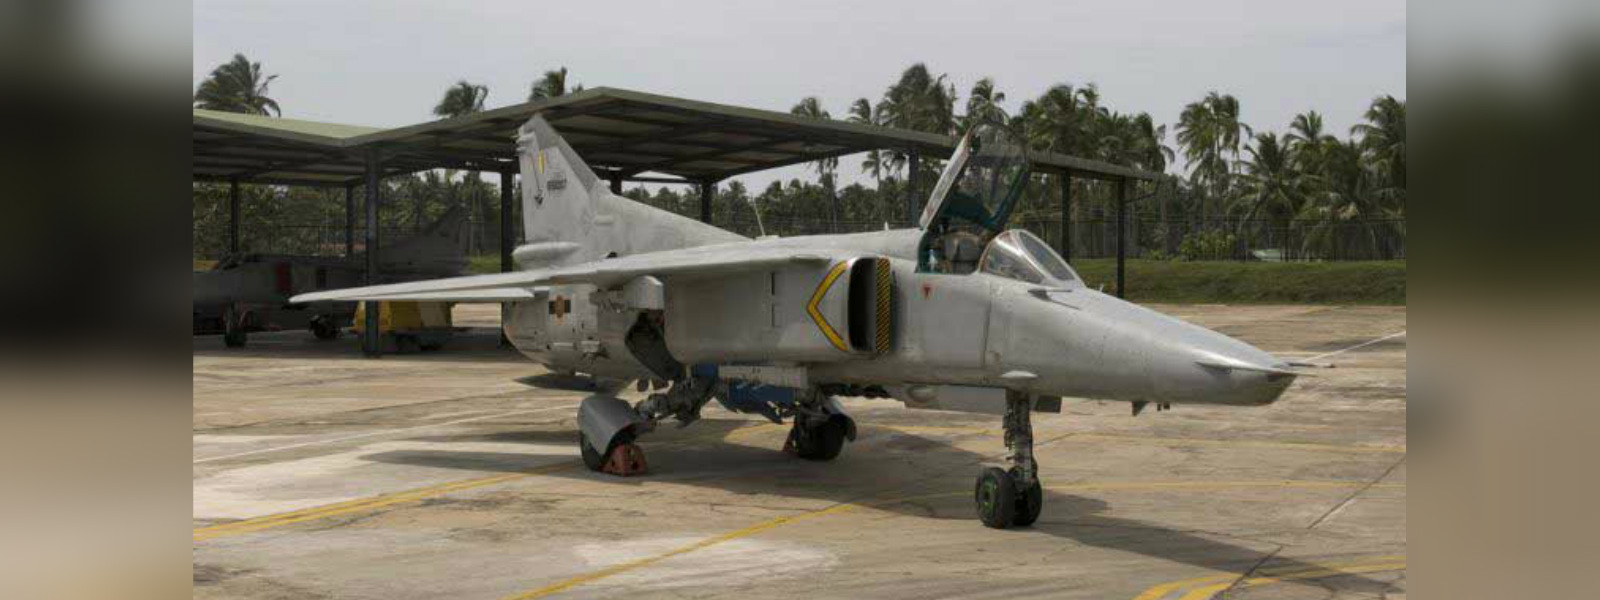 MiG deal conducted outside accepted procurement procedures